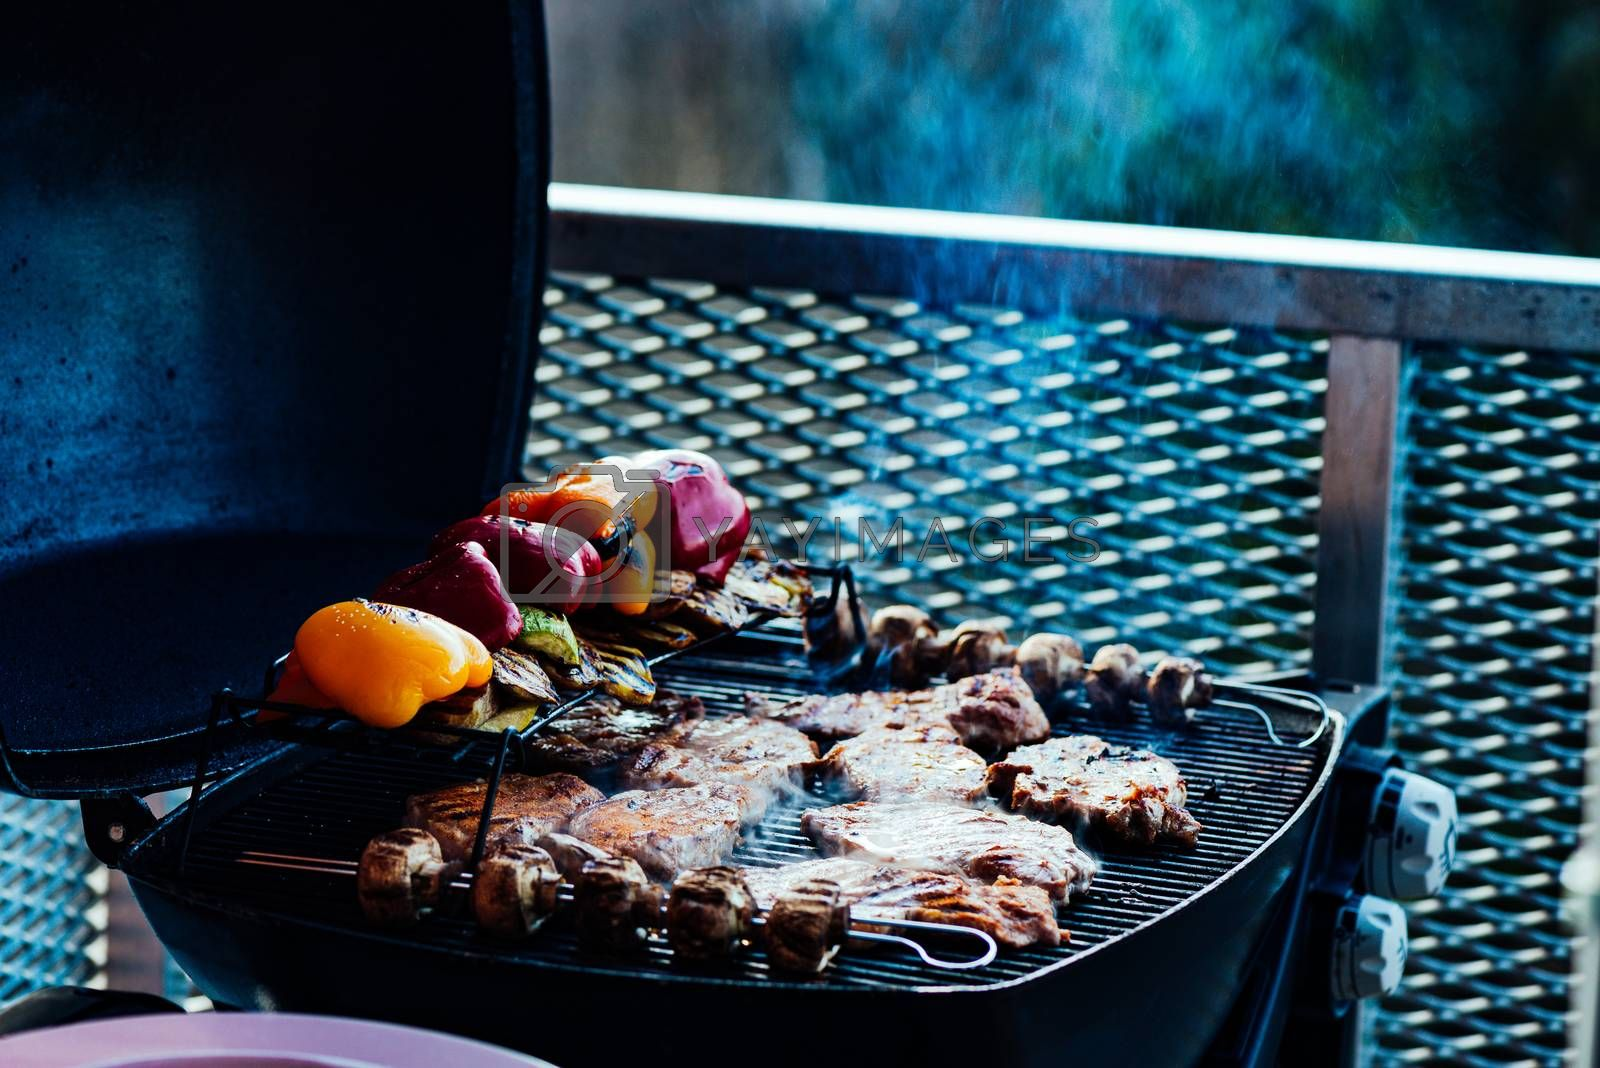 Assorted vegetables and meat cooking on a grill